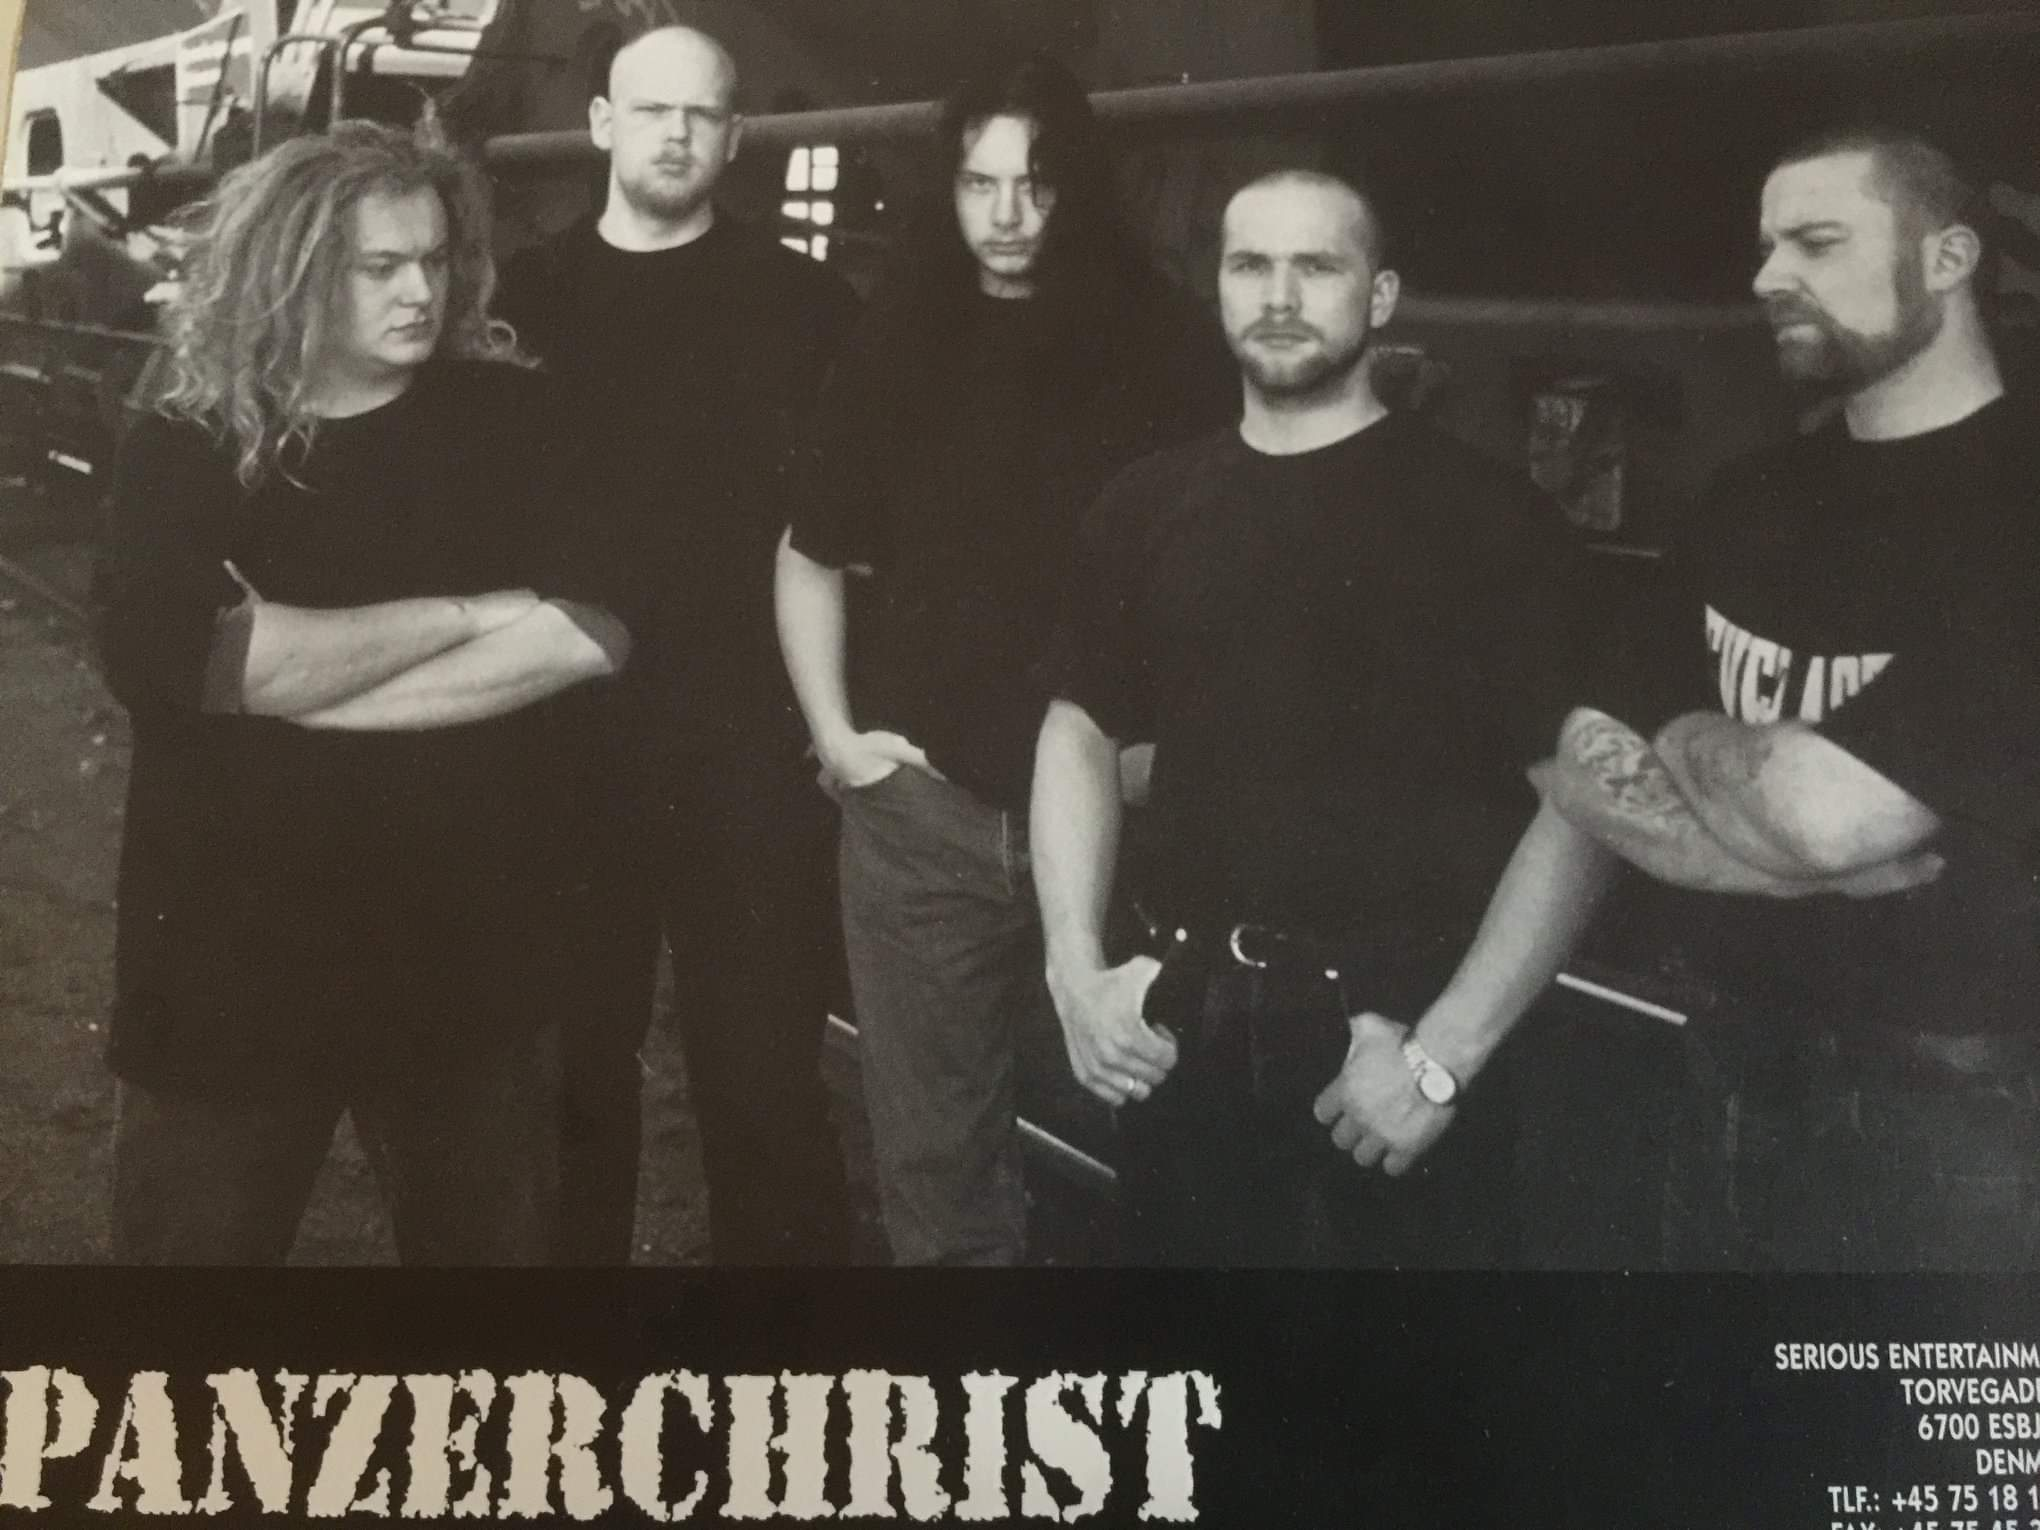 Panzerchrist - Photo